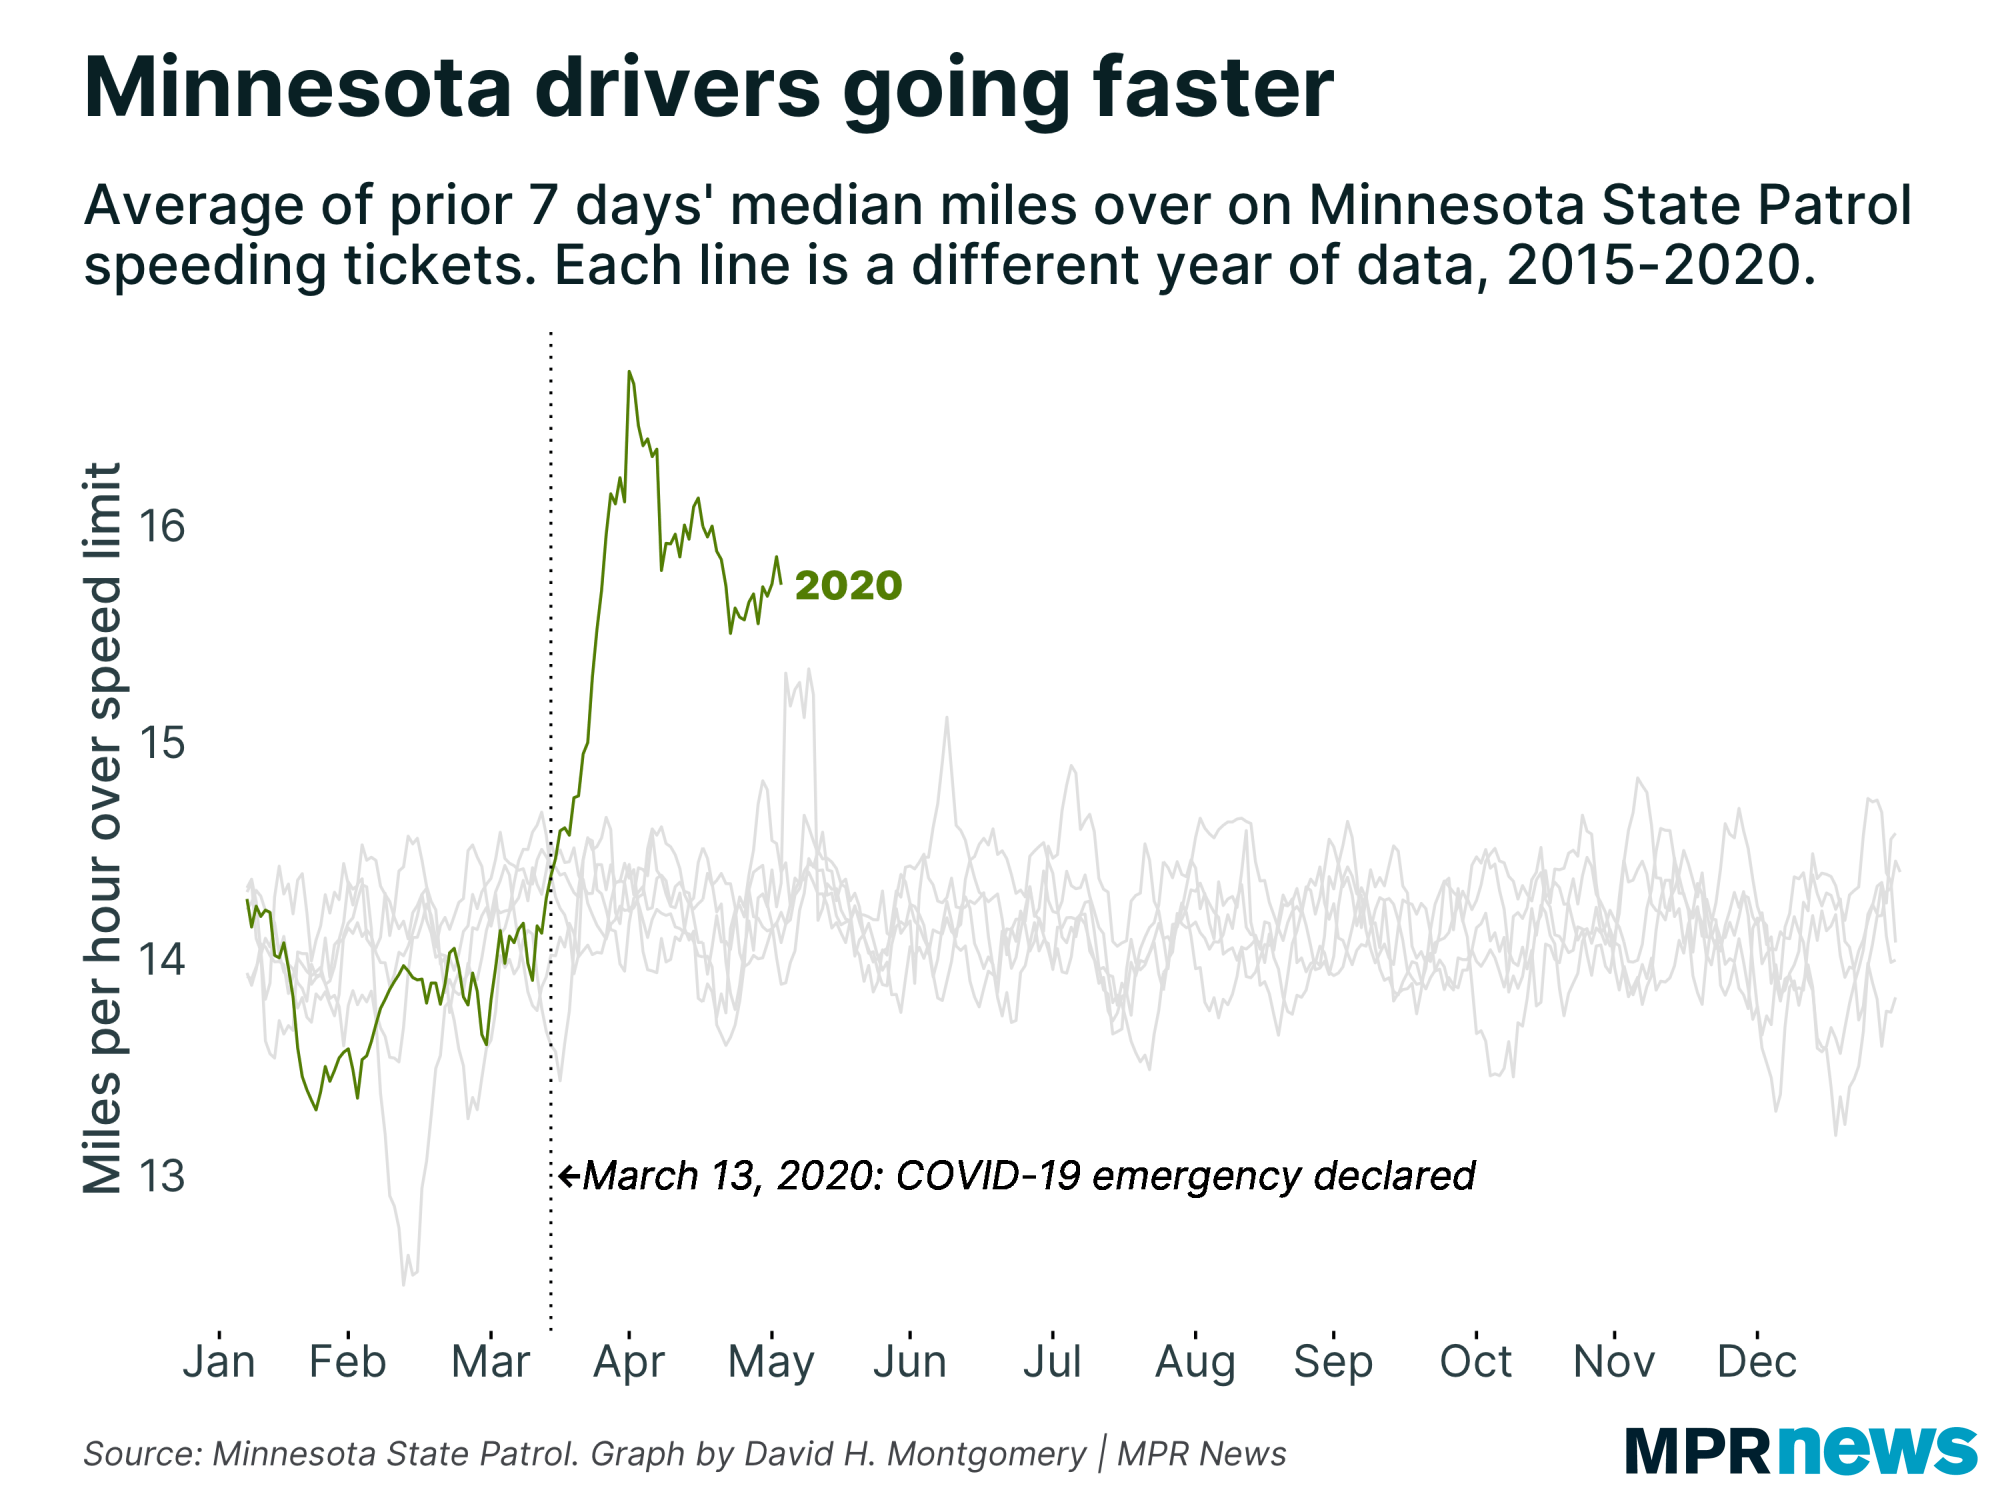 Minnesota speeders are driving faster since the COVID-19 shutdown.